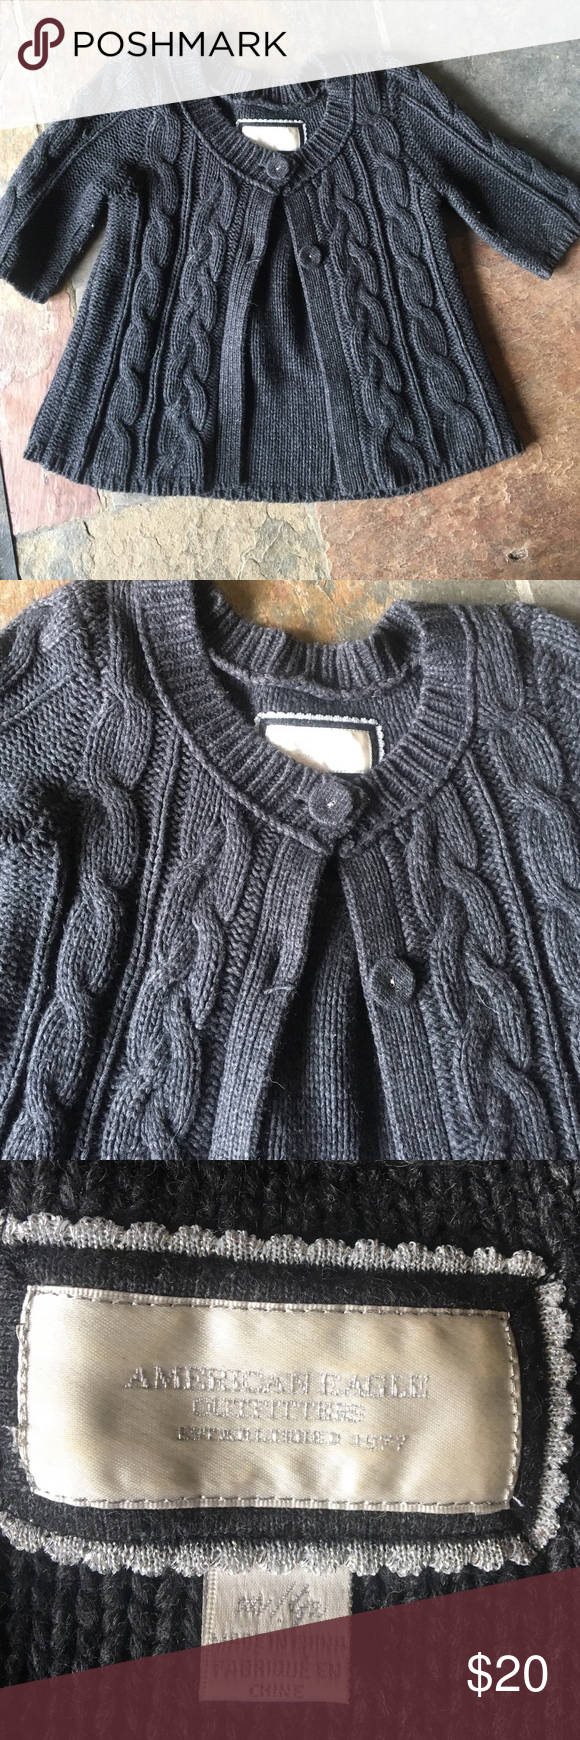 Cropped cable knit sweater Charcoal grey 2 button short sleeve cable knit sweater. Excellent condition. Great over a tank or flowy top. American Eagle Outfitters Sweaters